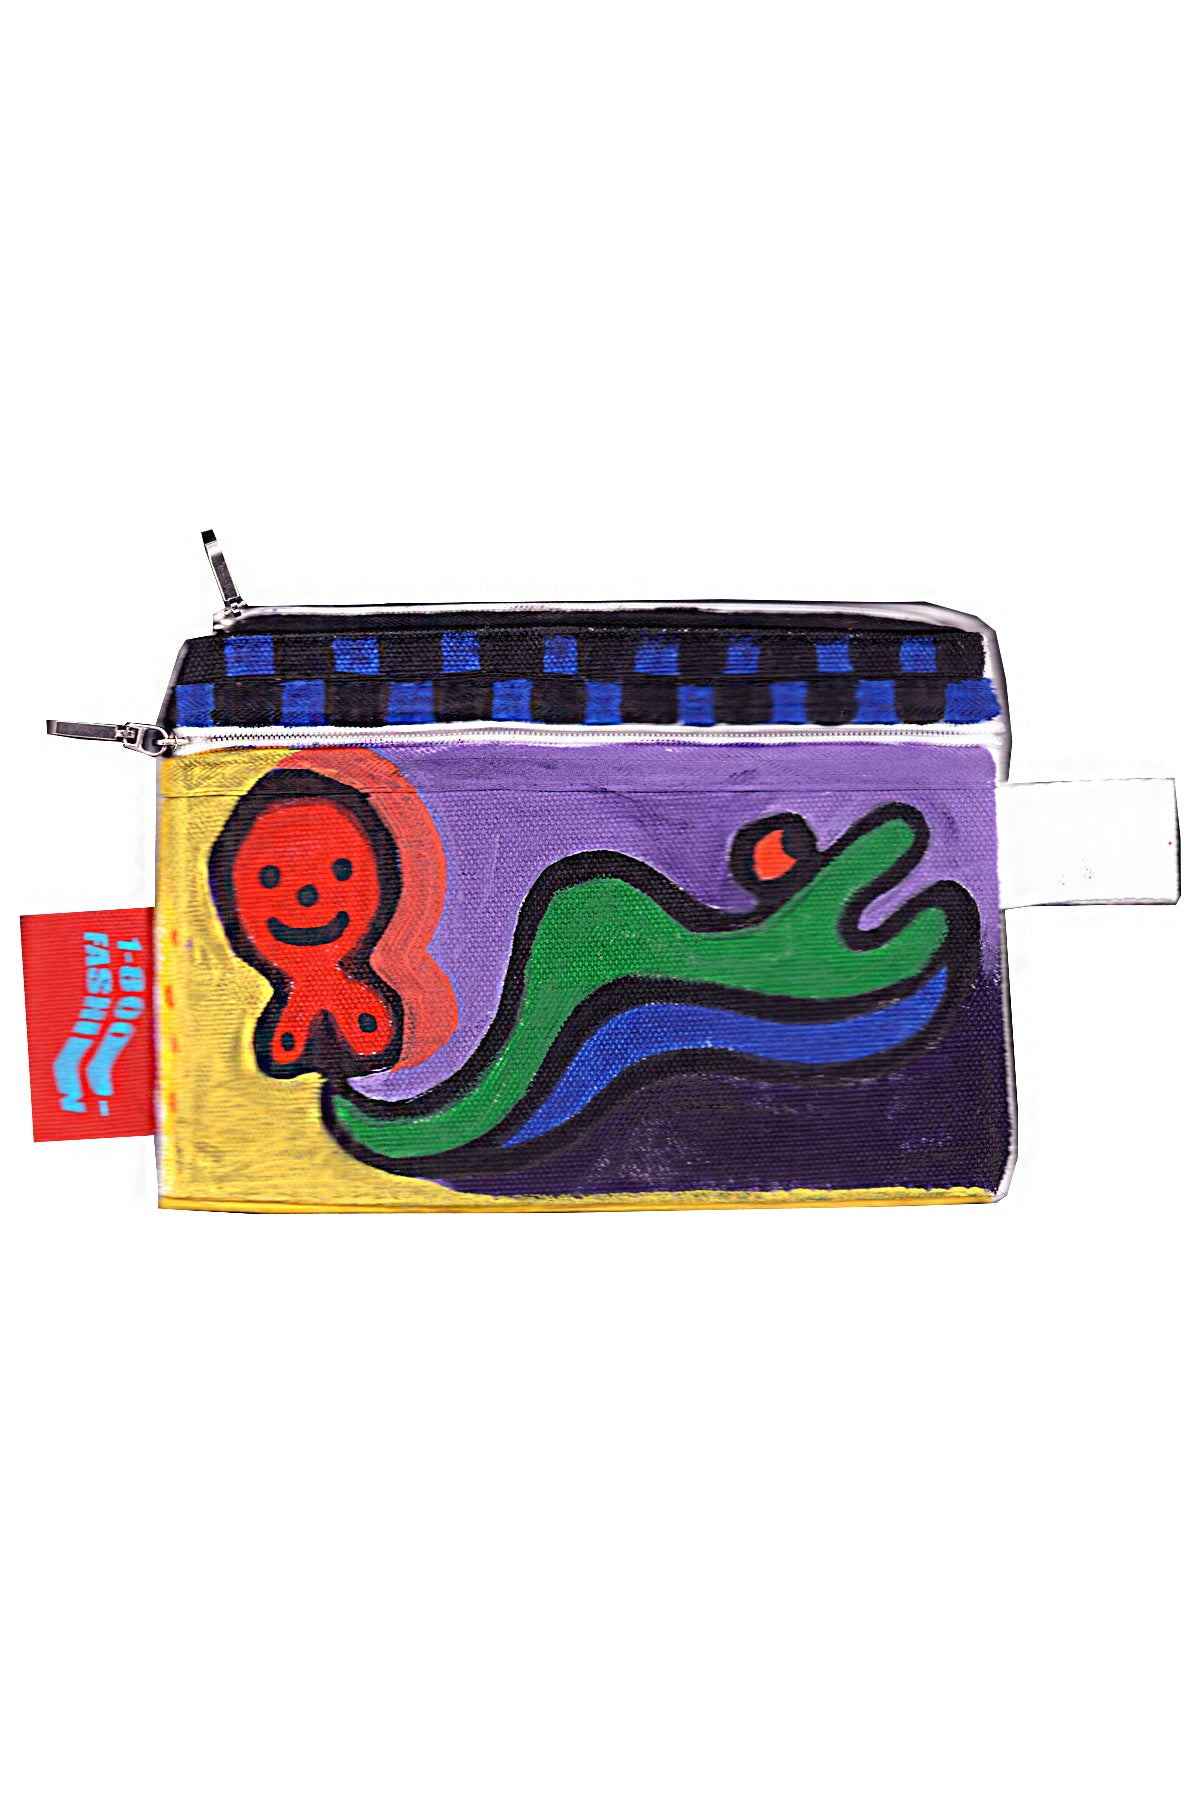 1-800-FASHIN :: HAND PAINTED ZIPPER STASH BAG #1